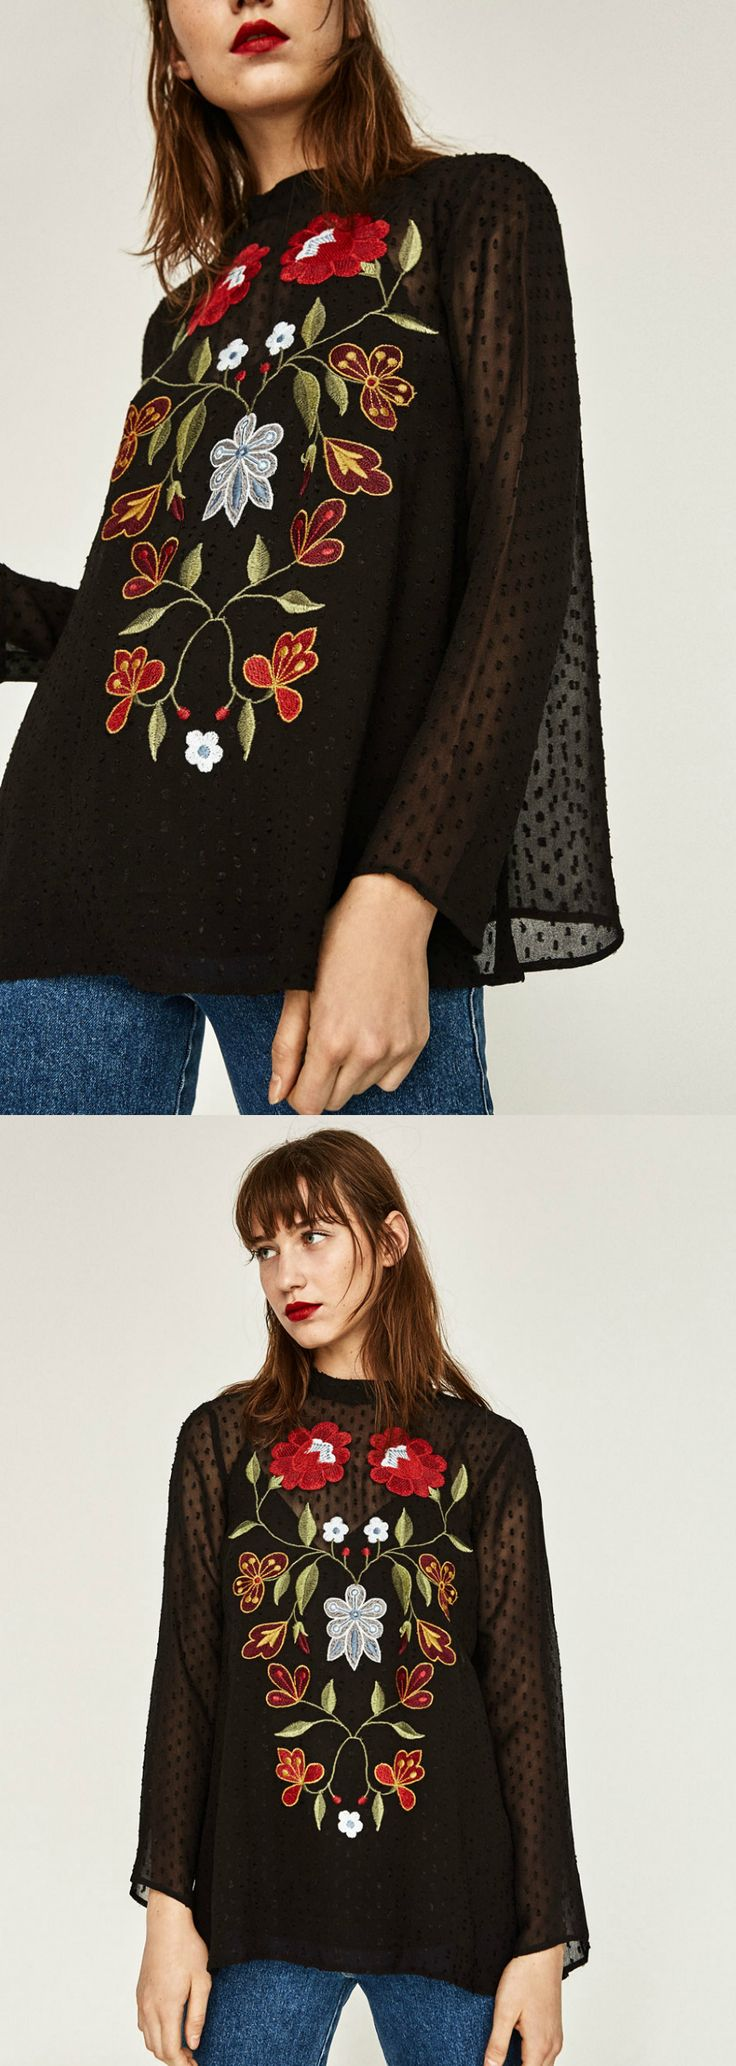 A Floral Embroidery Blouse is now available at $36. This blouse exhibit brilliant colours with unique embroidered flowers.